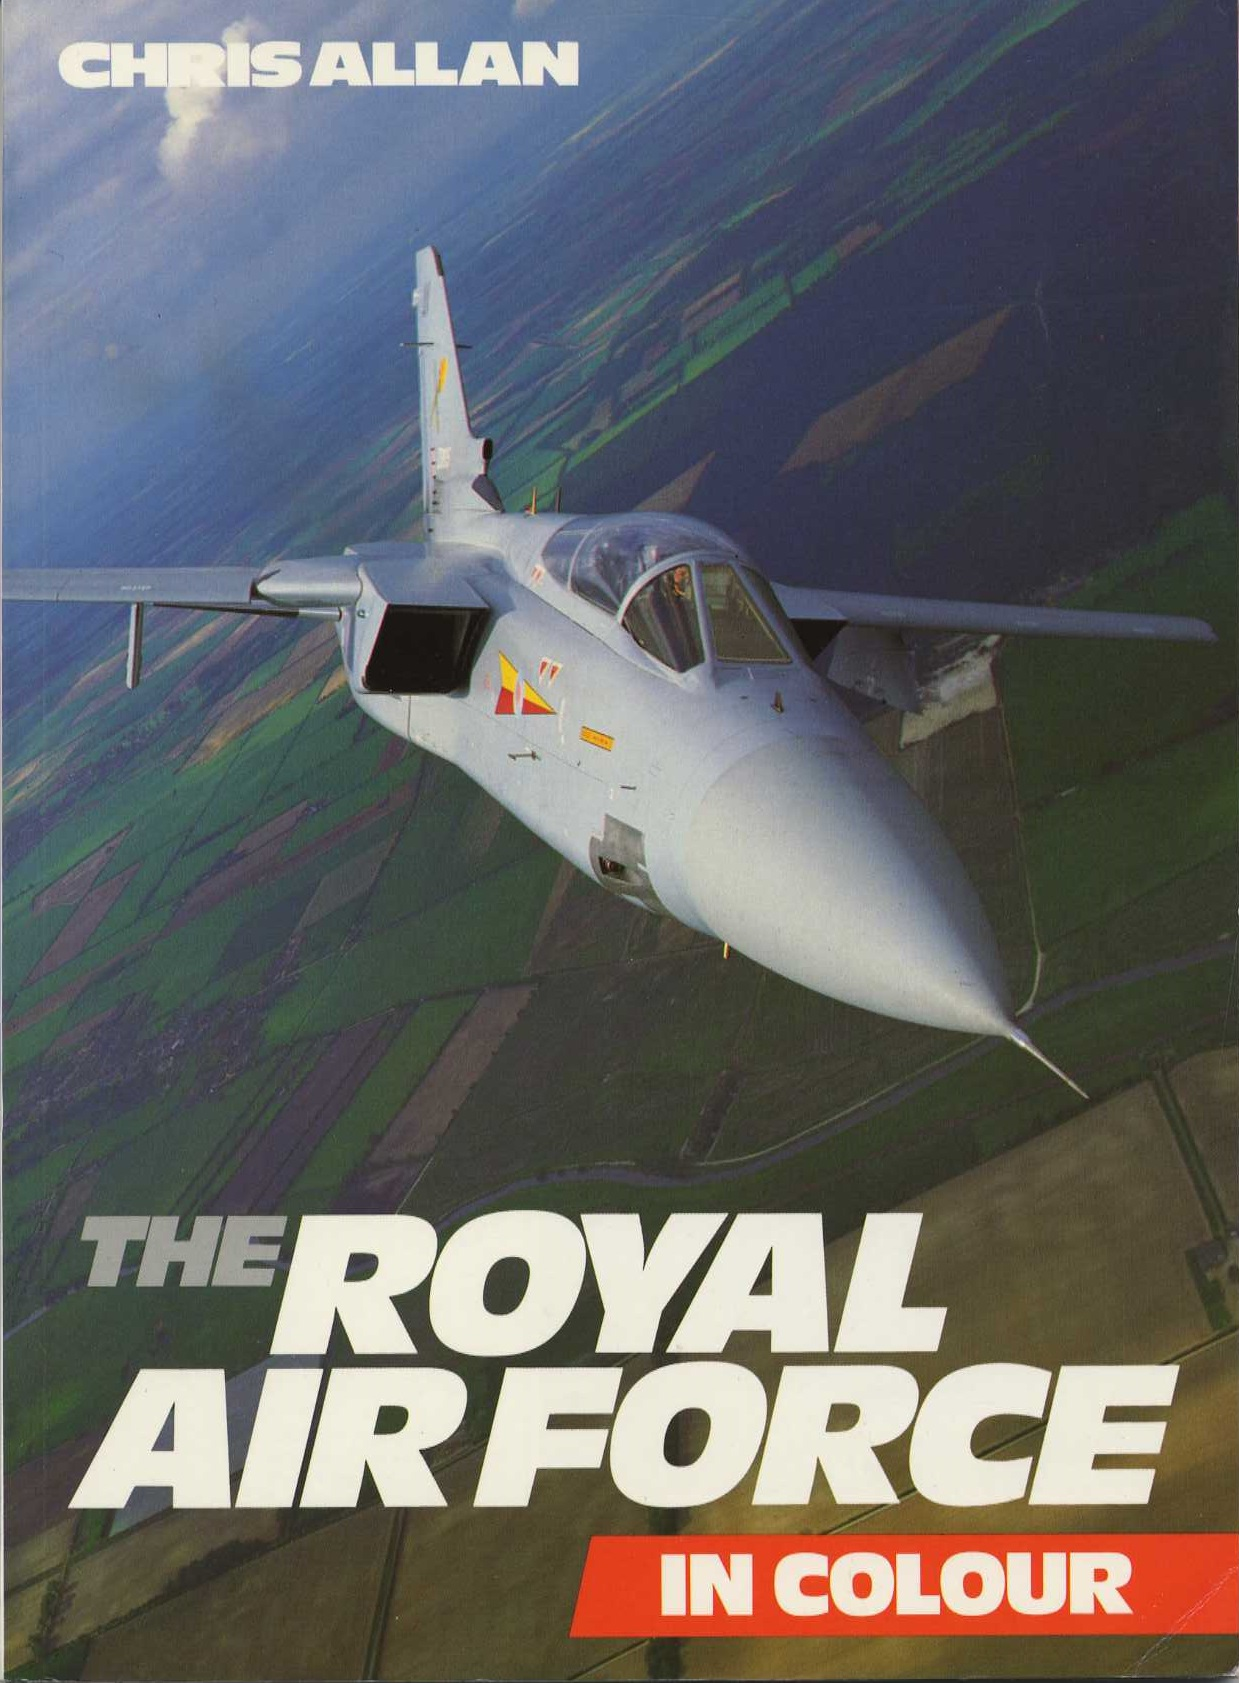 The Royal Air Force in Colour